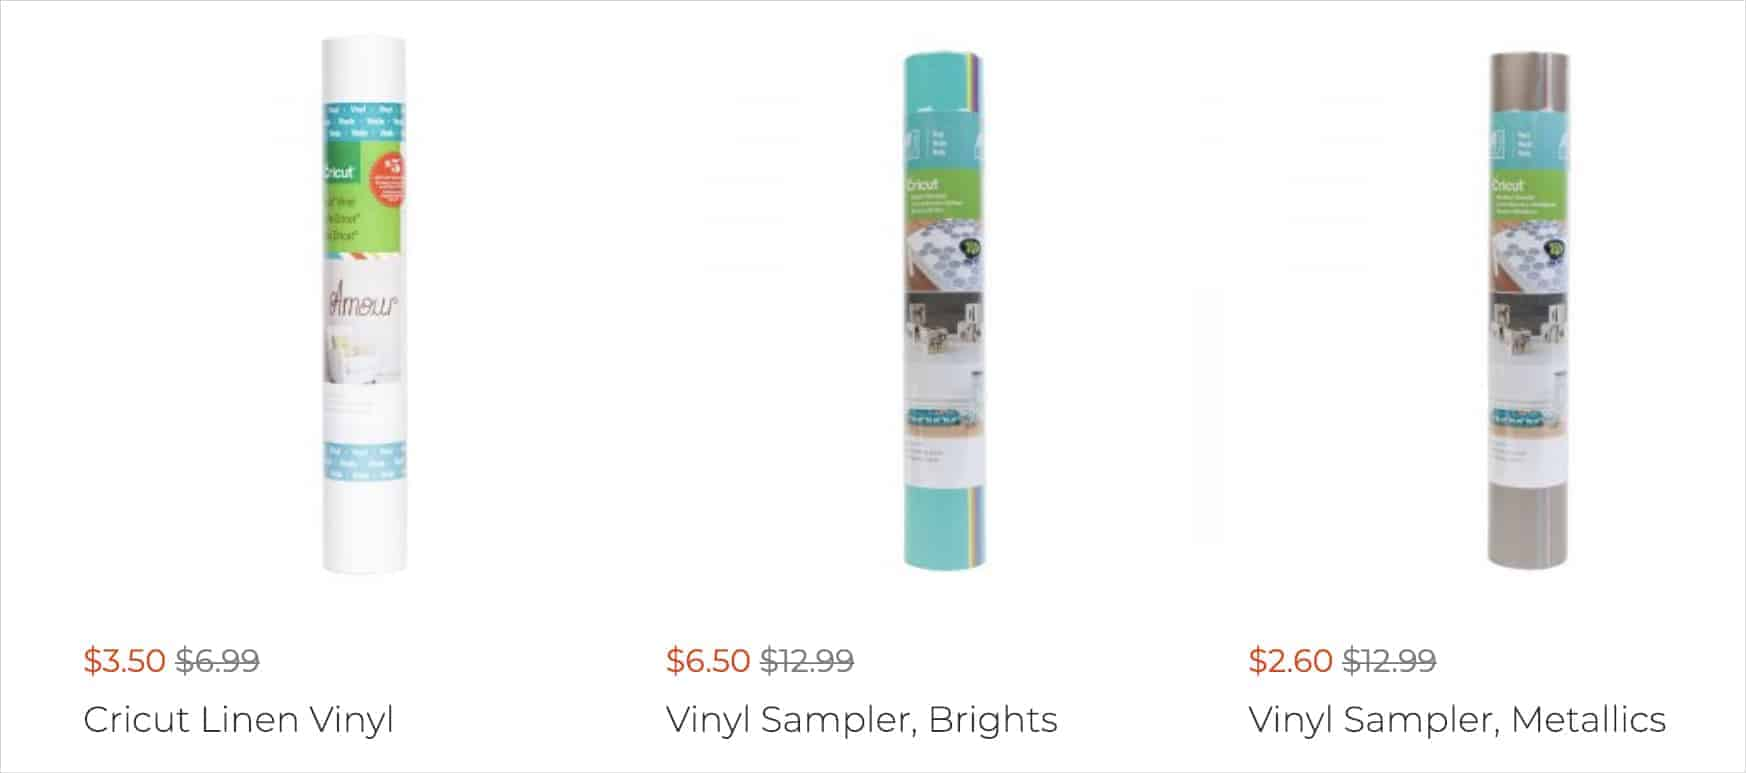 Cricut Cyber Monday Deals on Vinyl